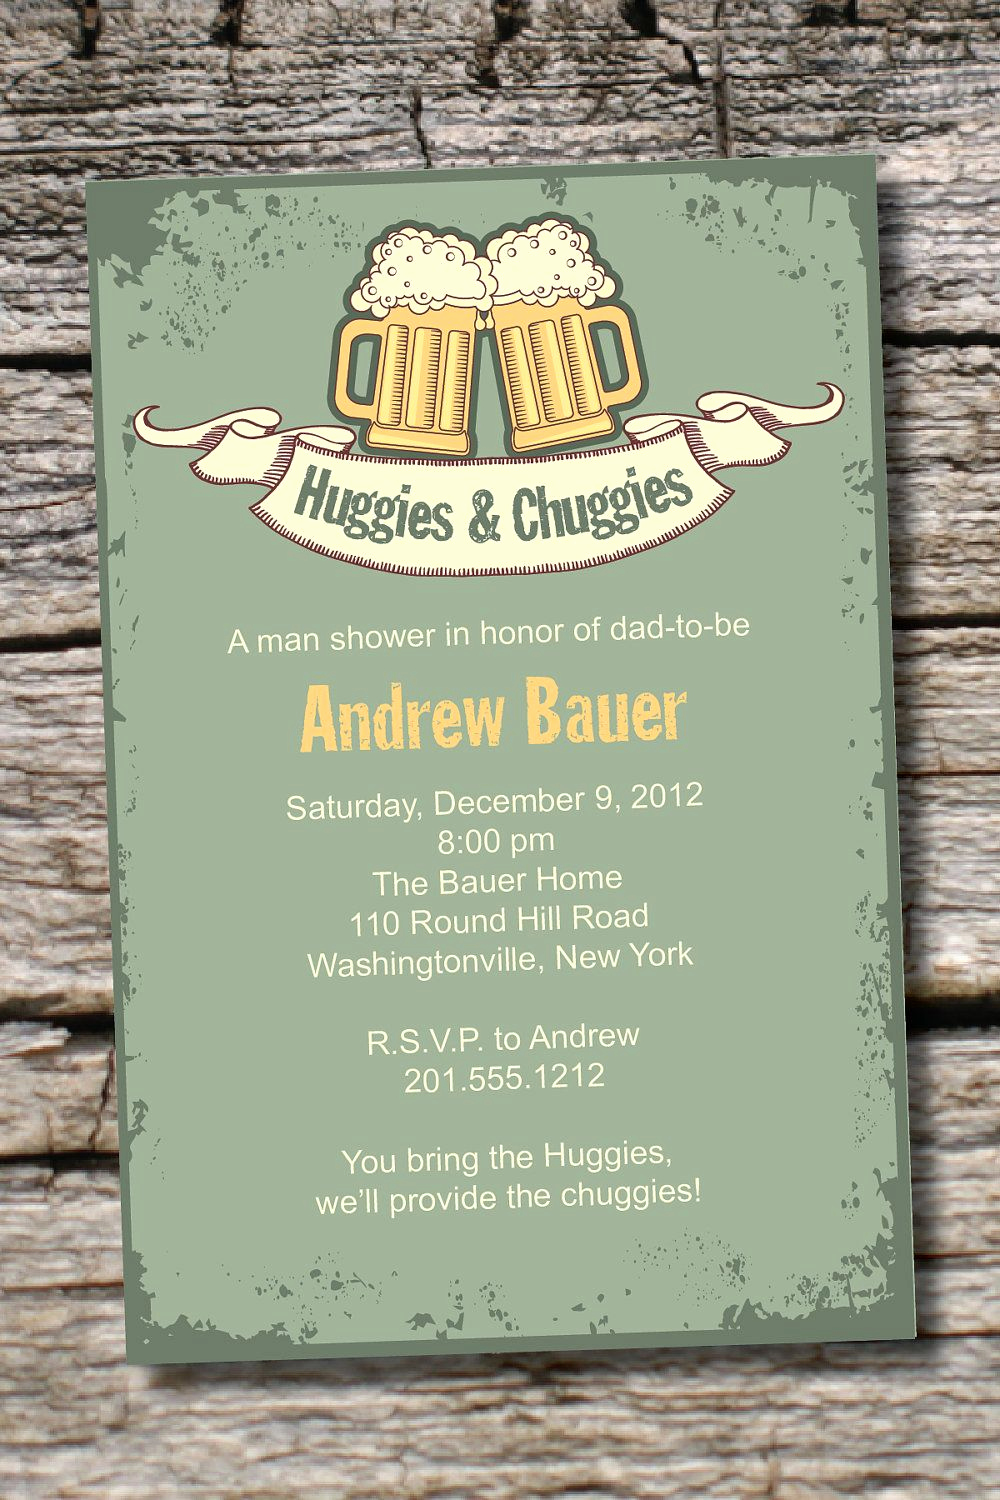 Diaper Party Invitation Wording Beautiful Vintage Huggies & Chuggies Bbq Beer and Babies Diaper